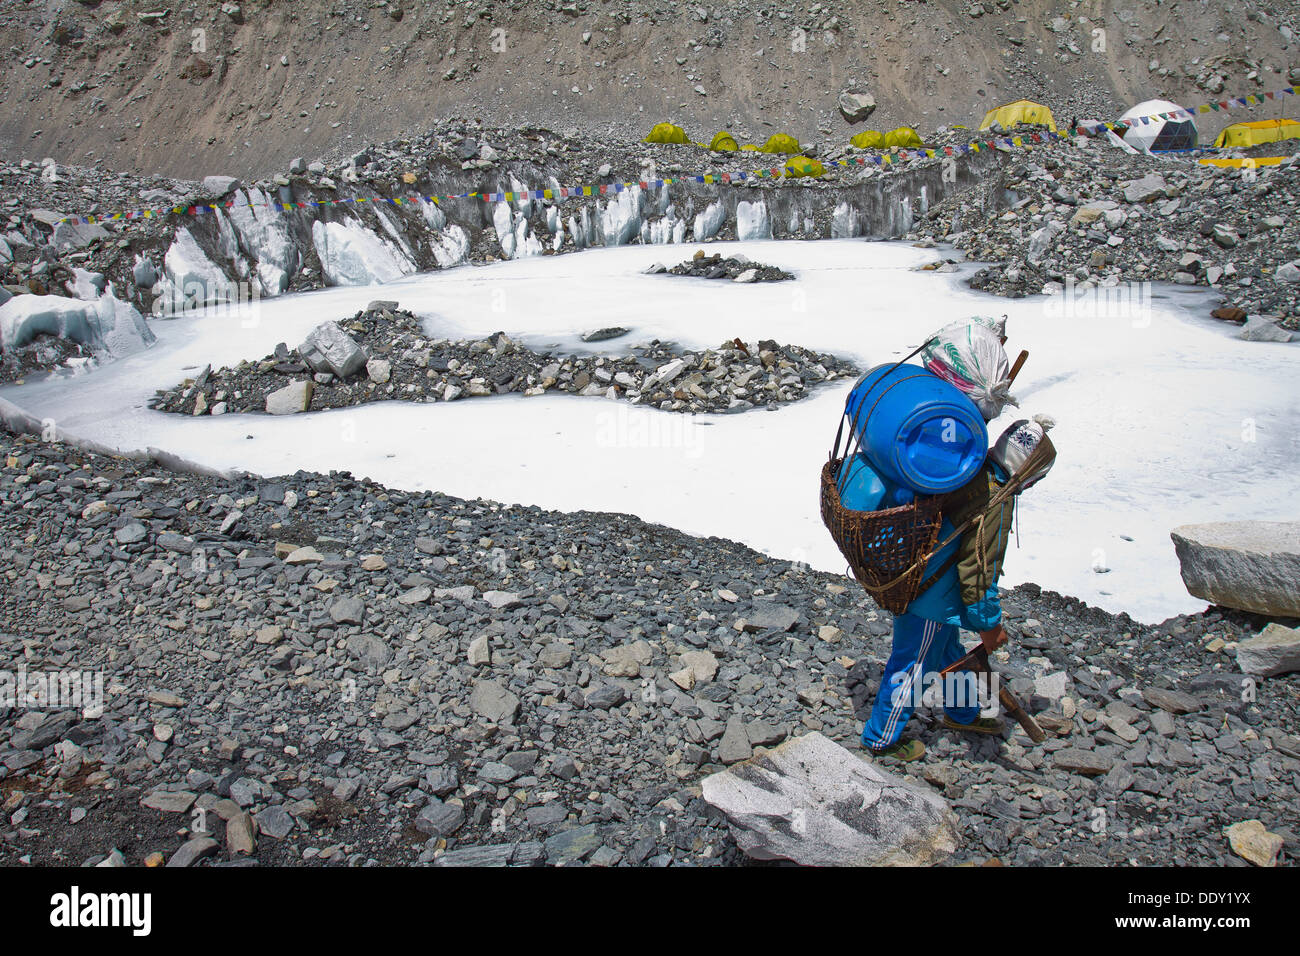 A porter at Mount Everest base camp in Nepal, Asia - Stock Image